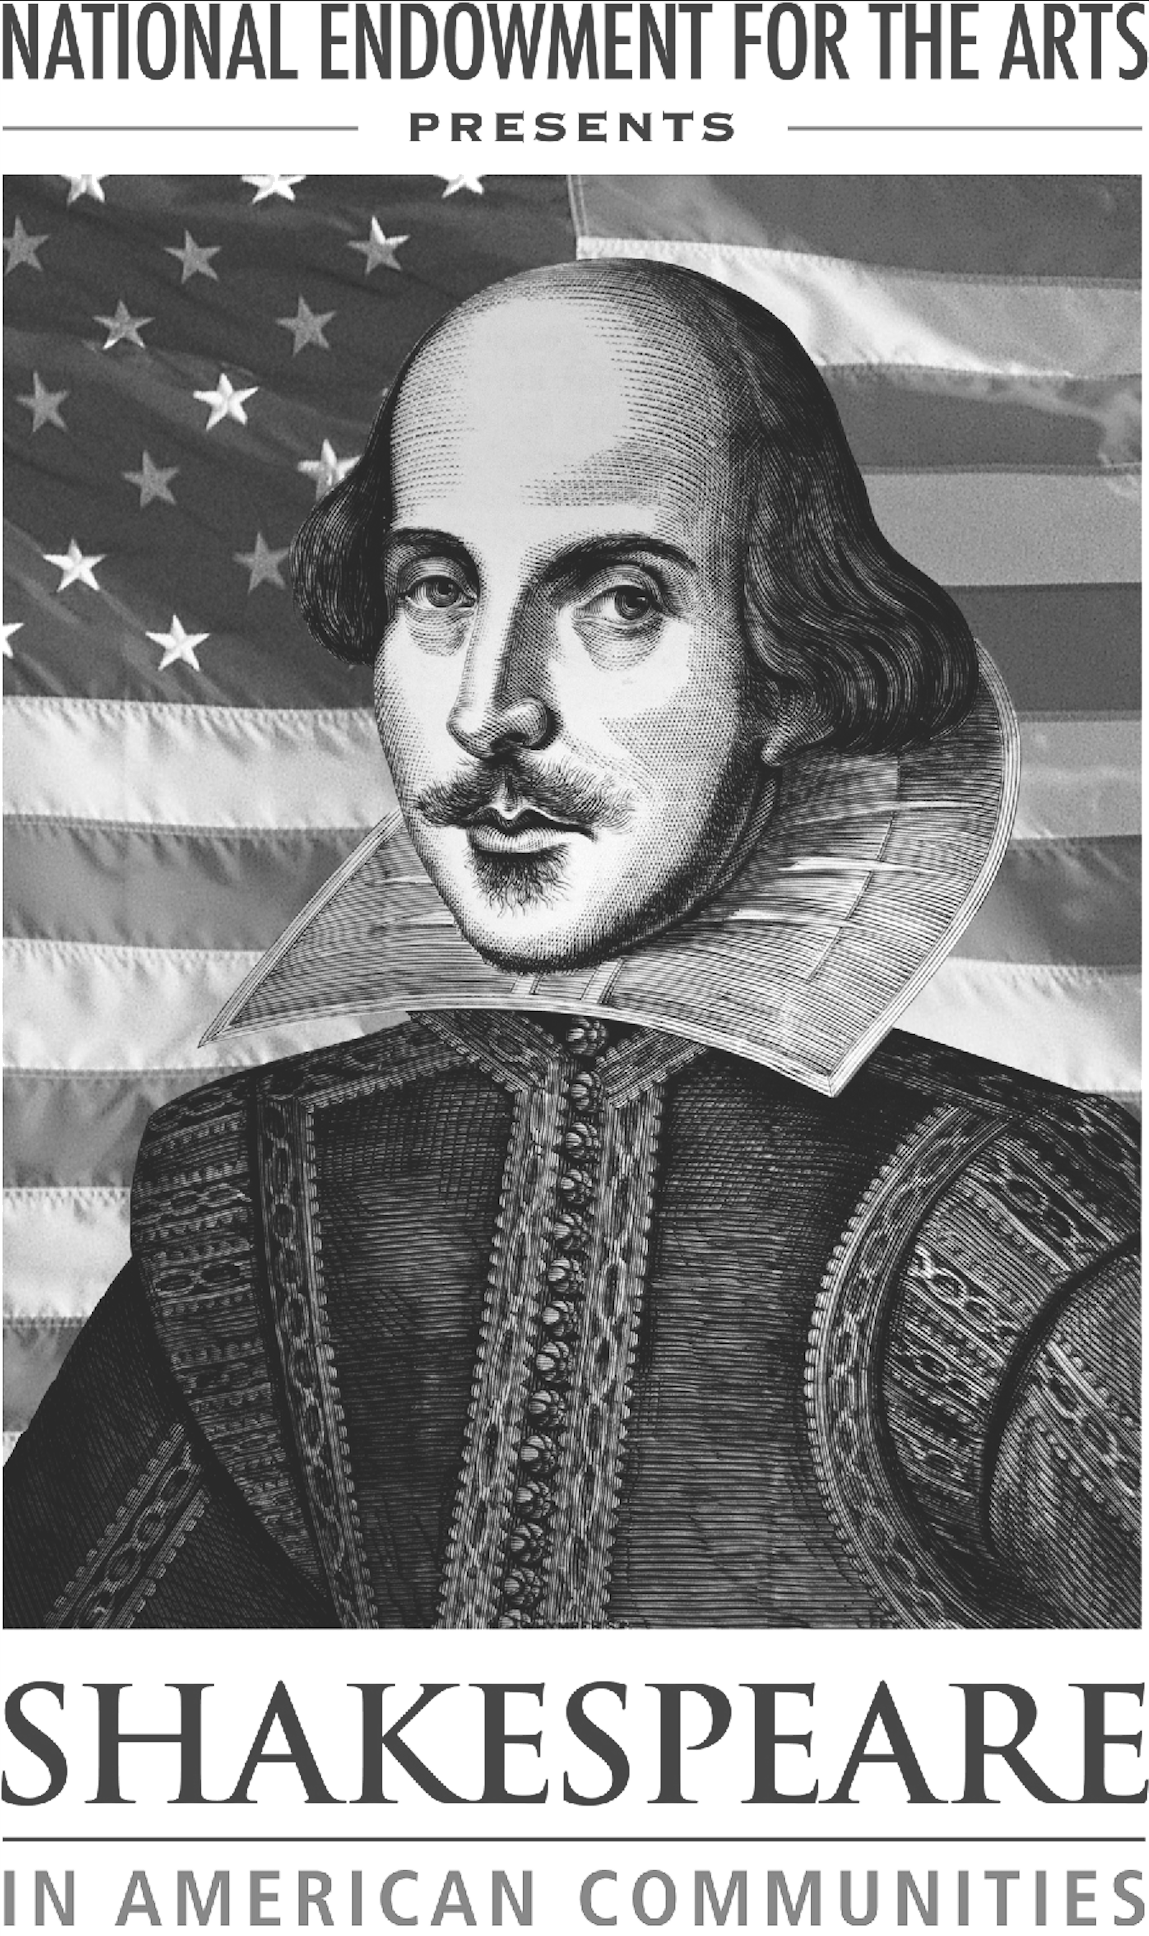 Funder: Shakespeare in American Communities